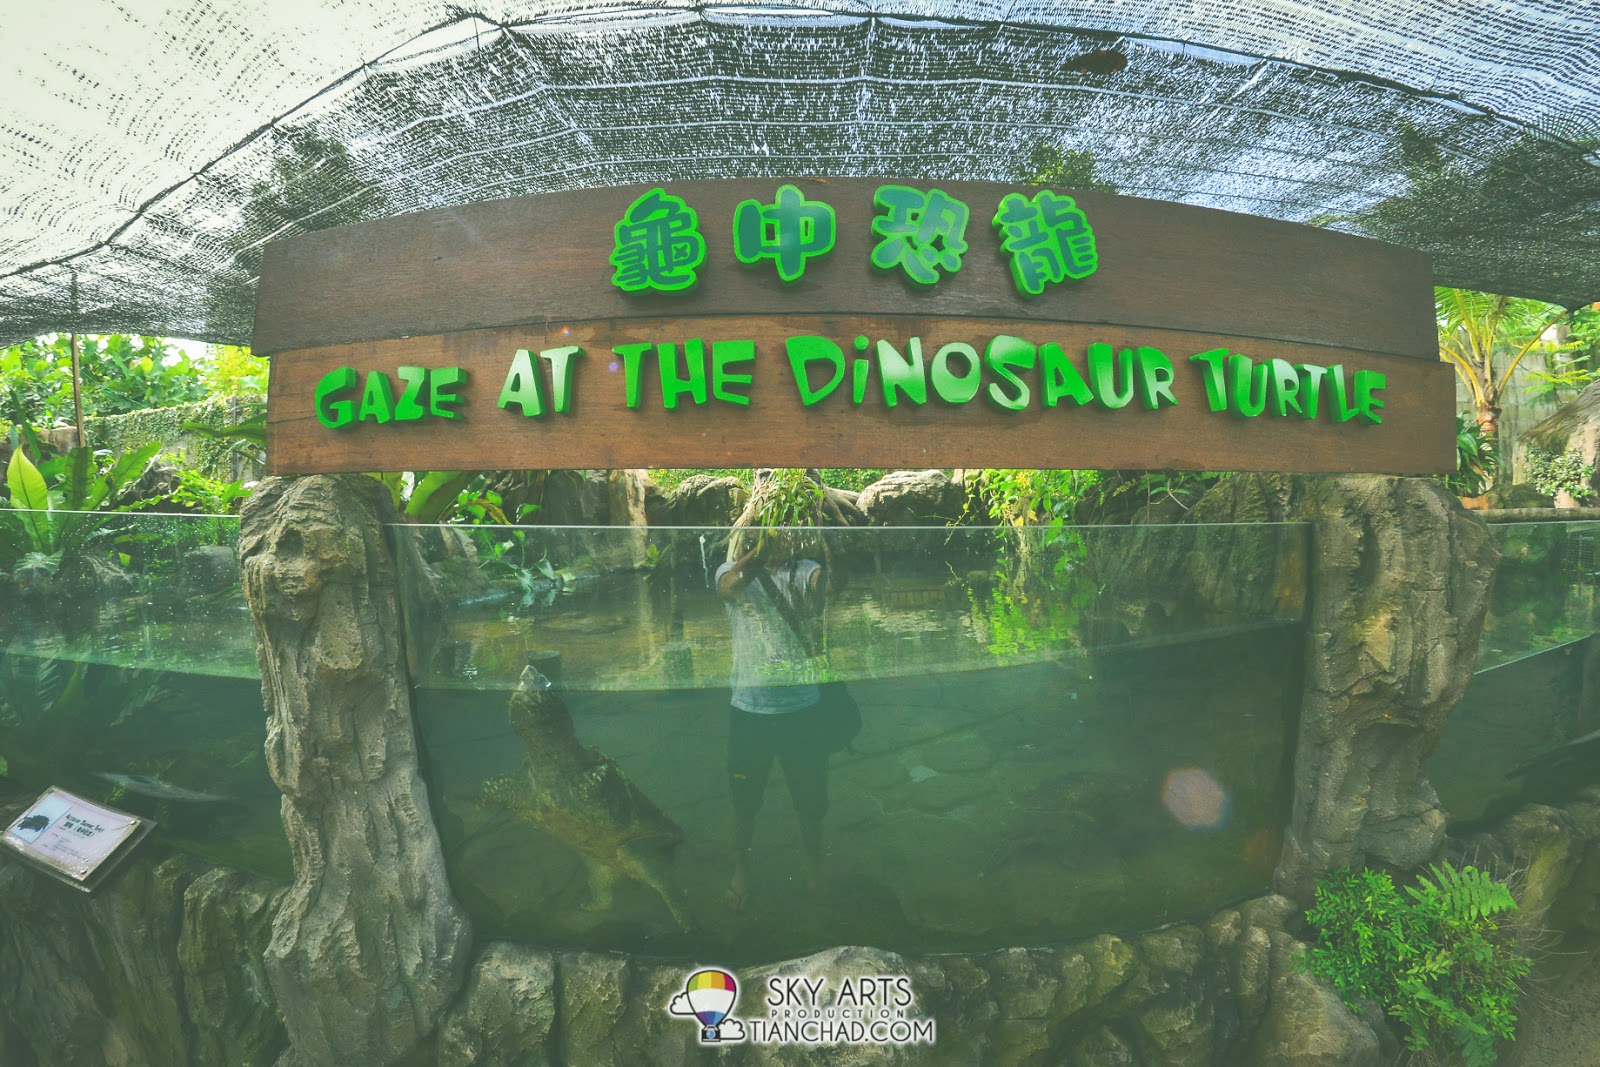 Dinosaur turtle in the aquarium, looks kinda antique